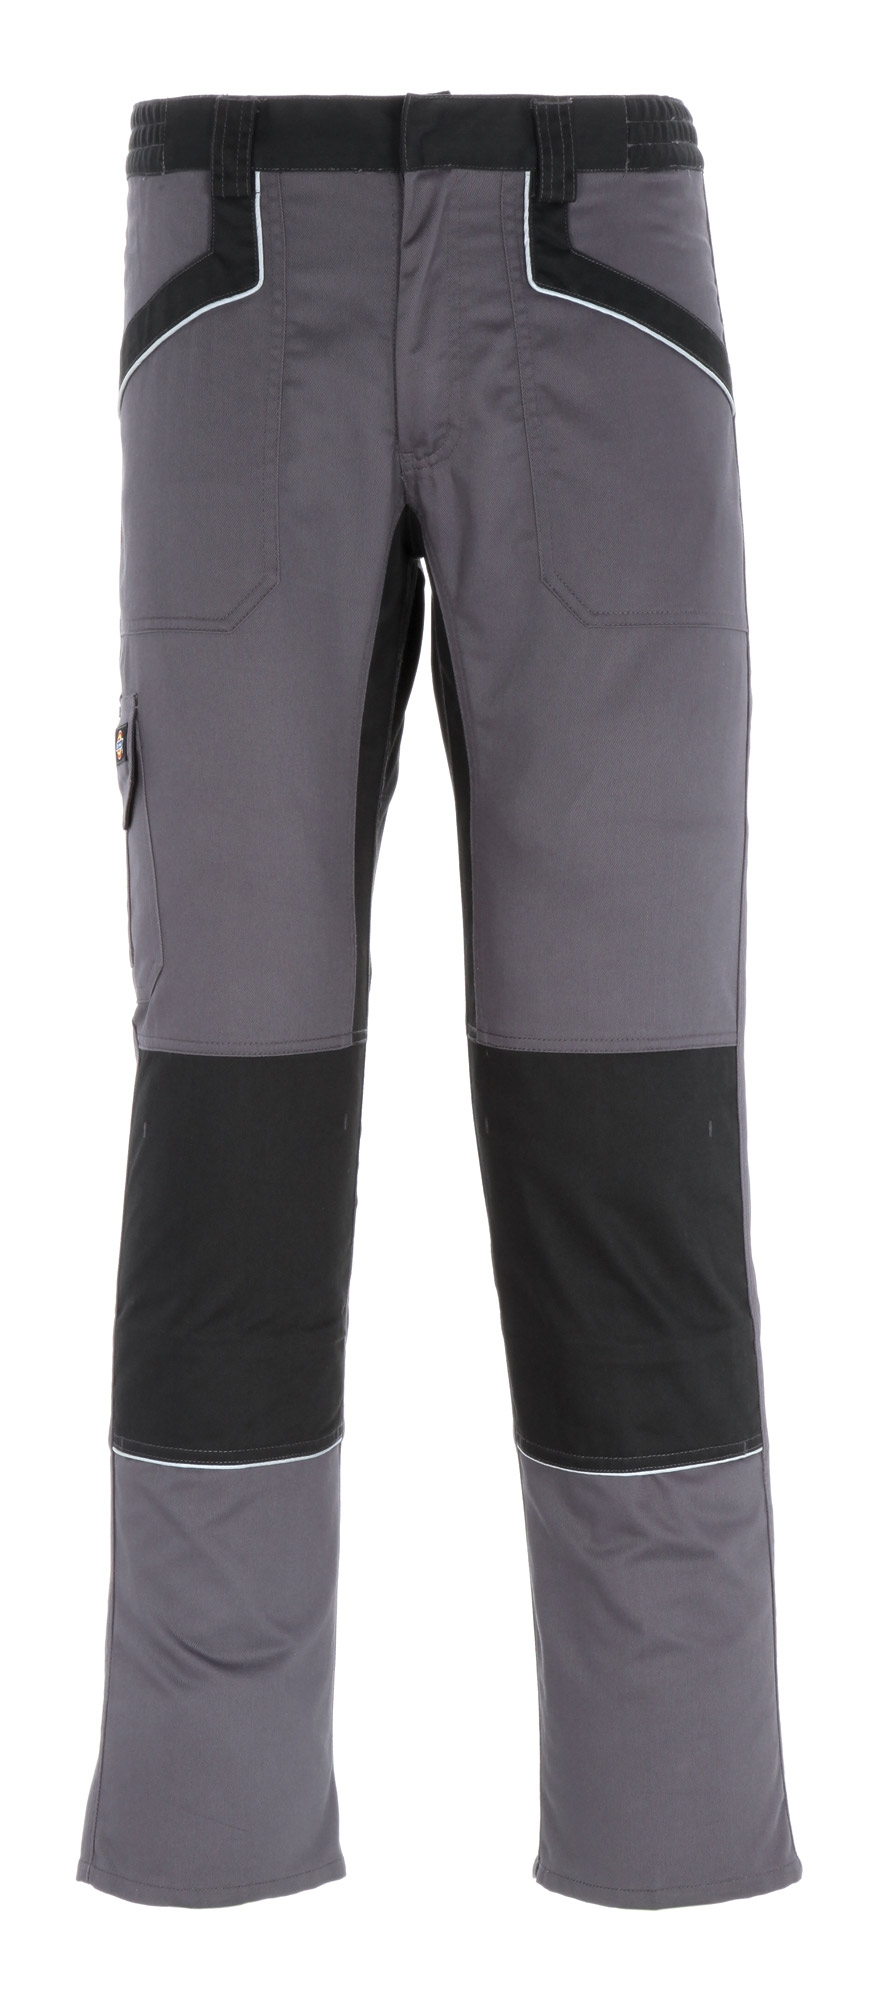 IND260 Trousers Grey/Black 50